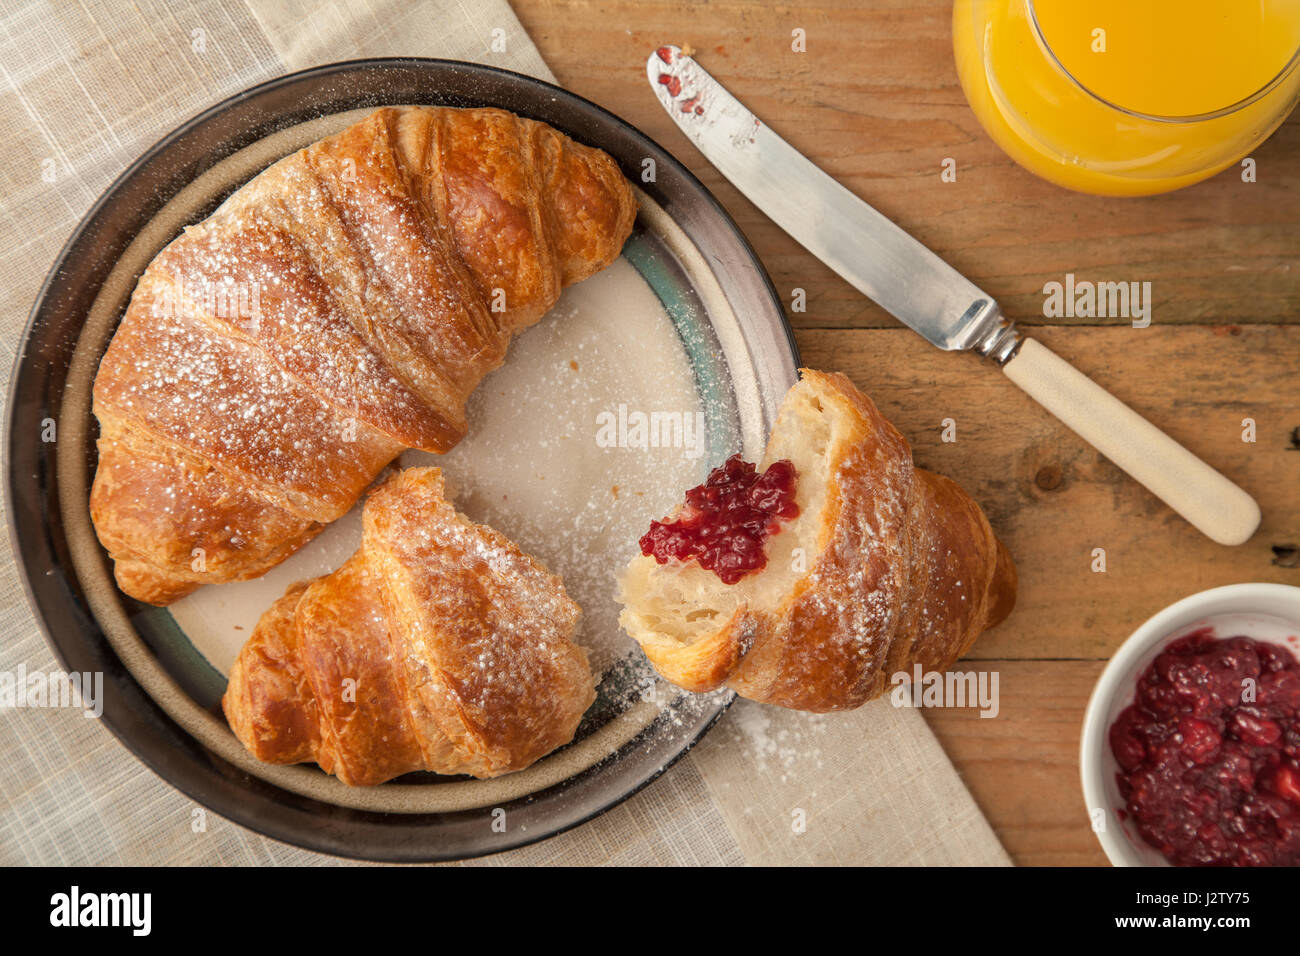 Top view of fresh croissants on a breakfast table settin - Stock Image